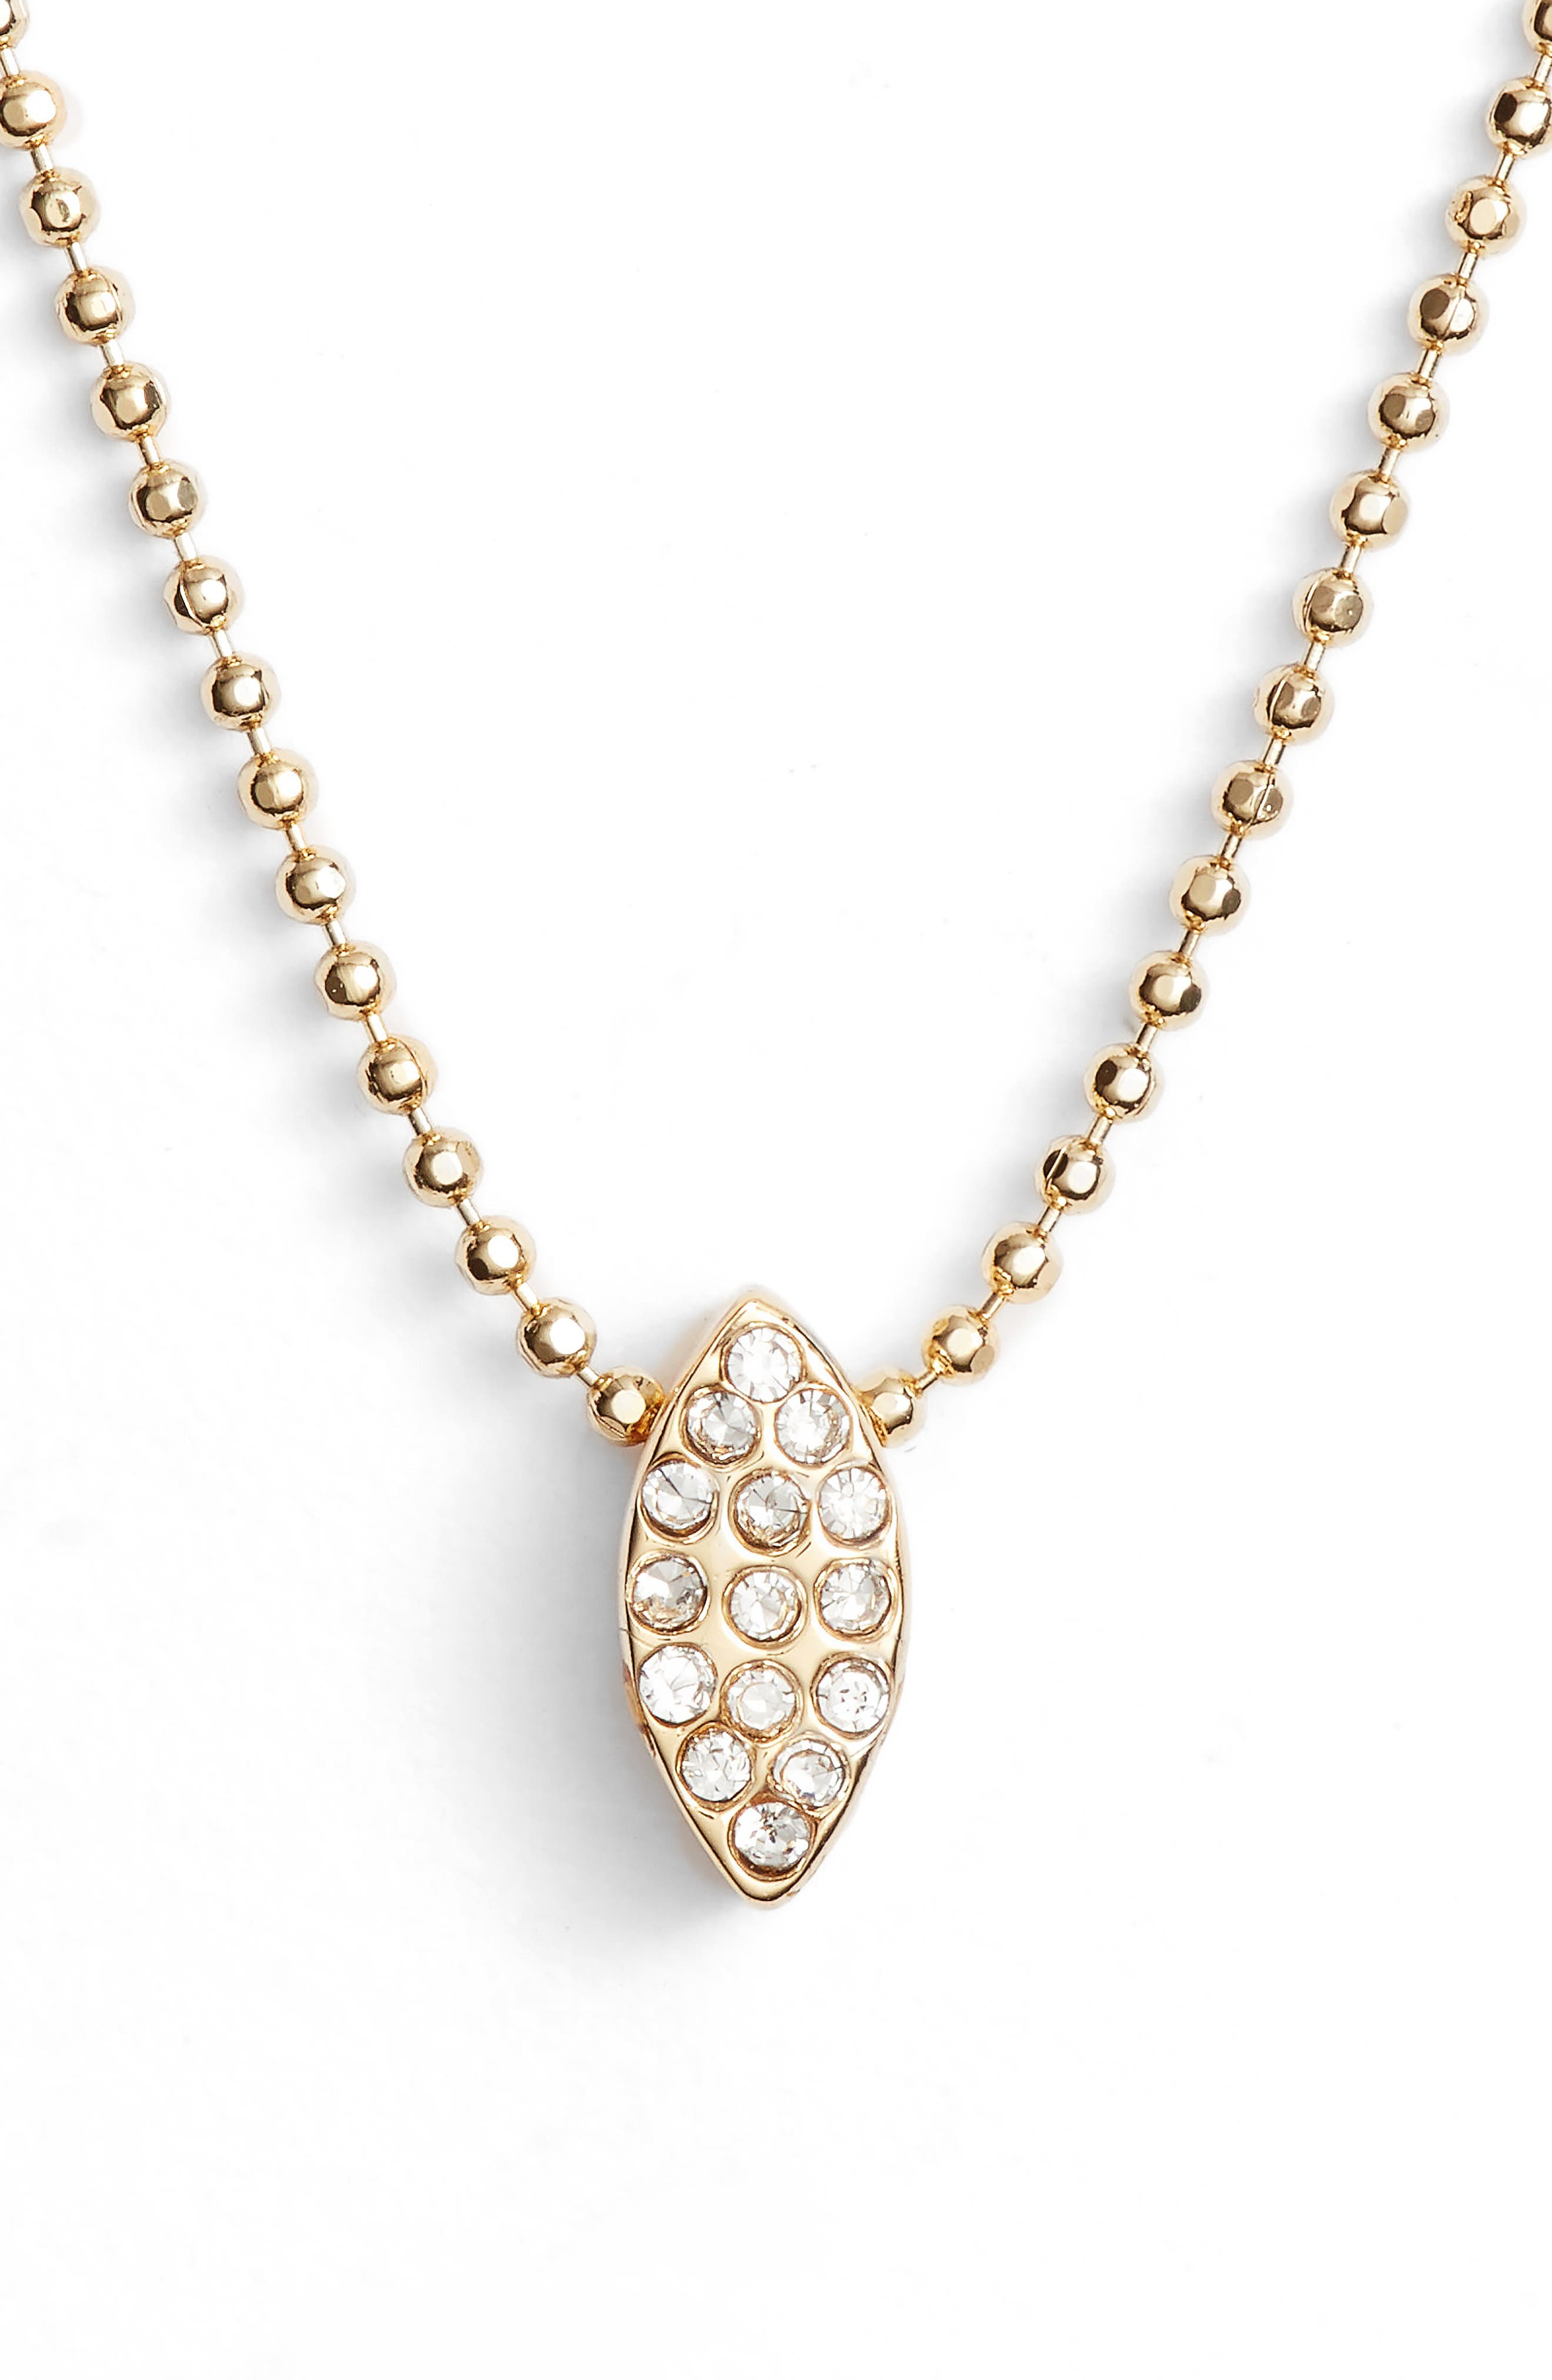 UNCOMMON JAMES BY KRISTIN CAVALLARI Uncommon James Just a Touch Necklace, Main, color, 710